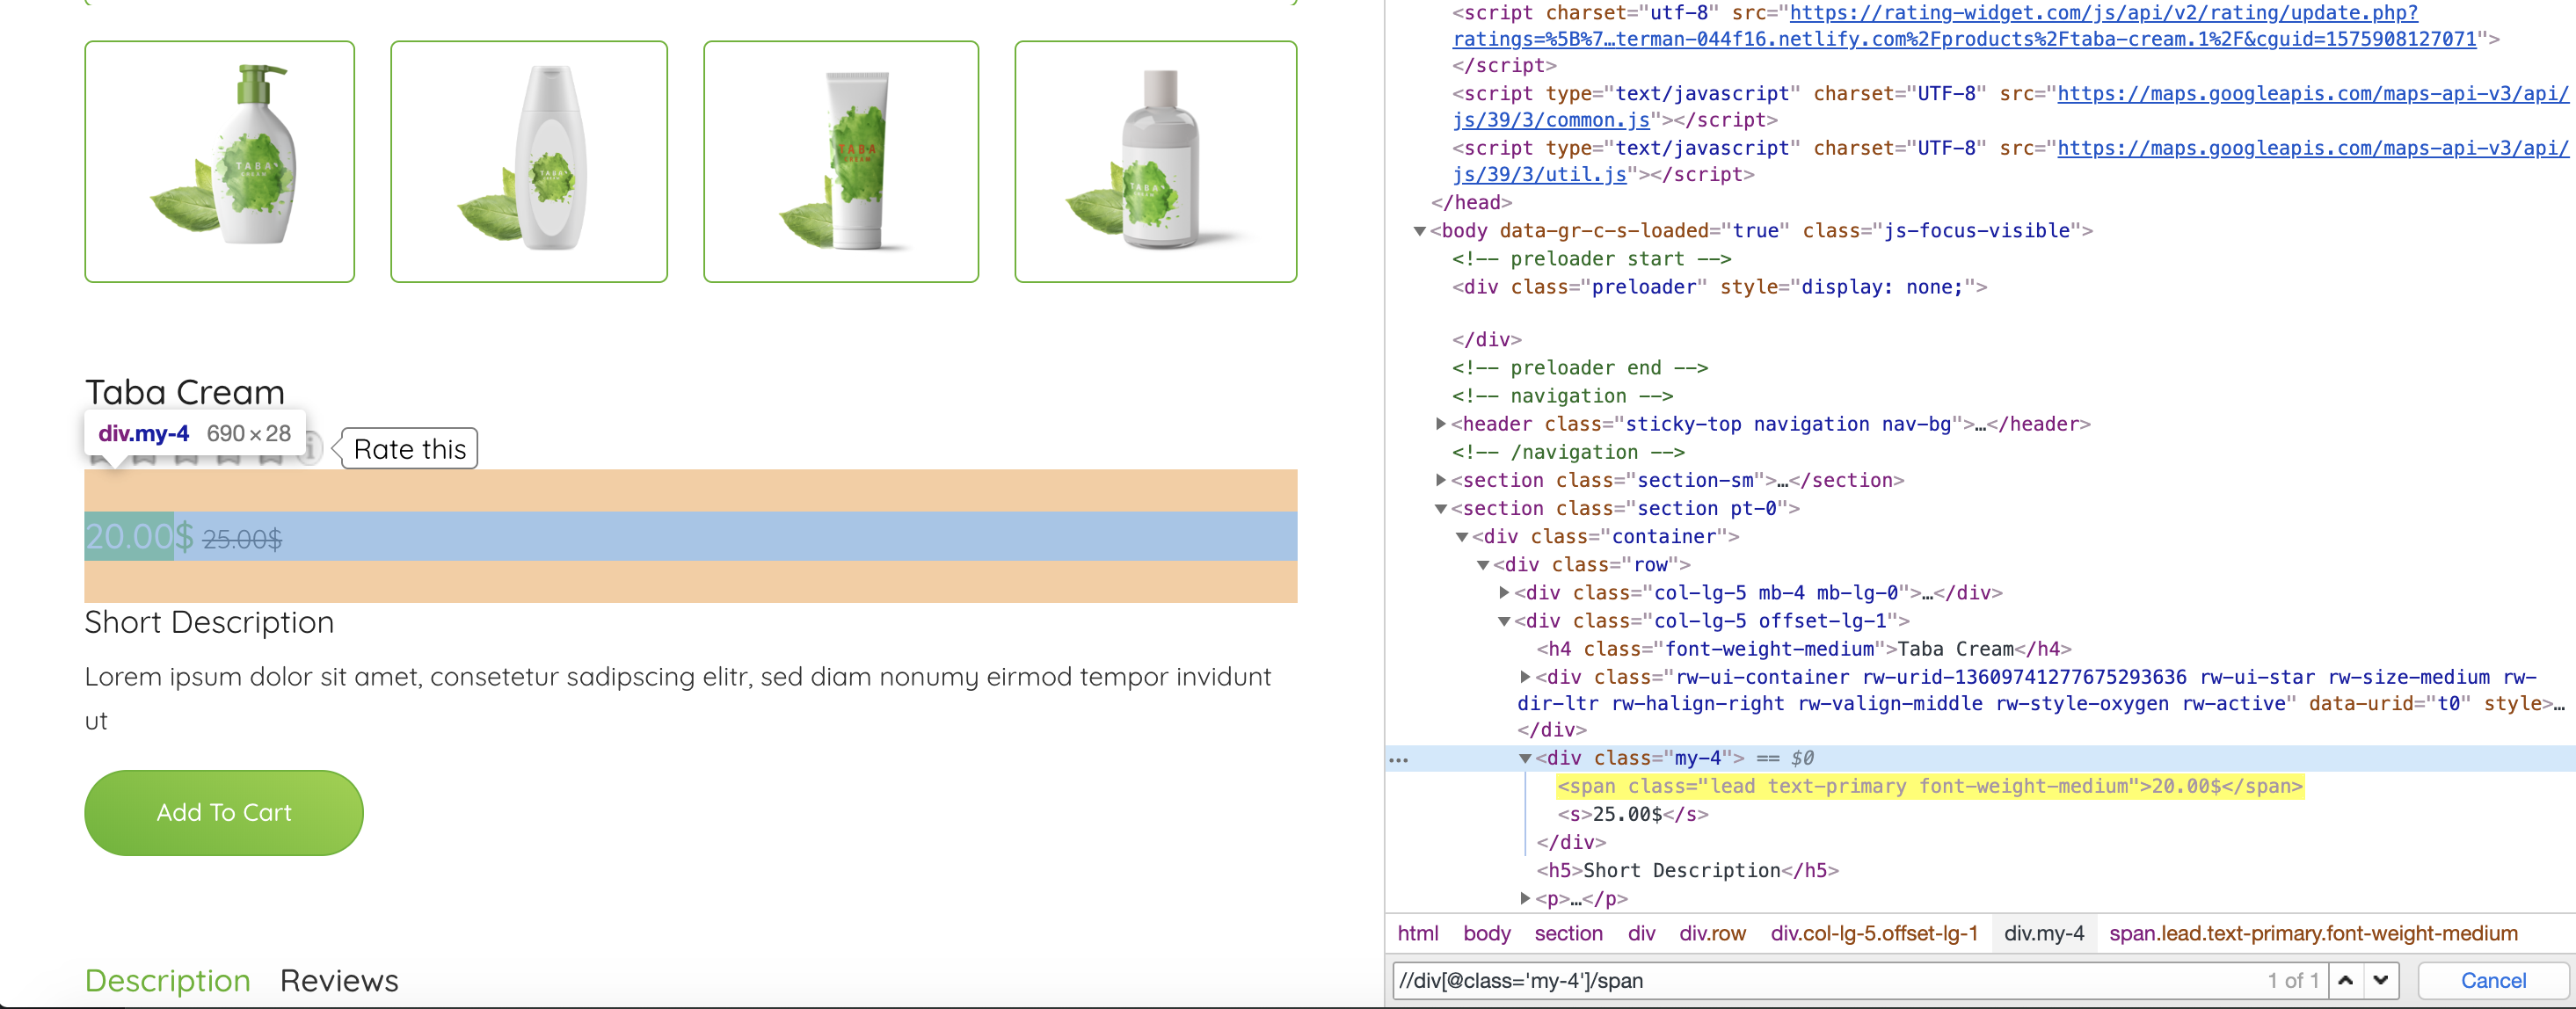 E-commerce product page with Chome dev tools opened.